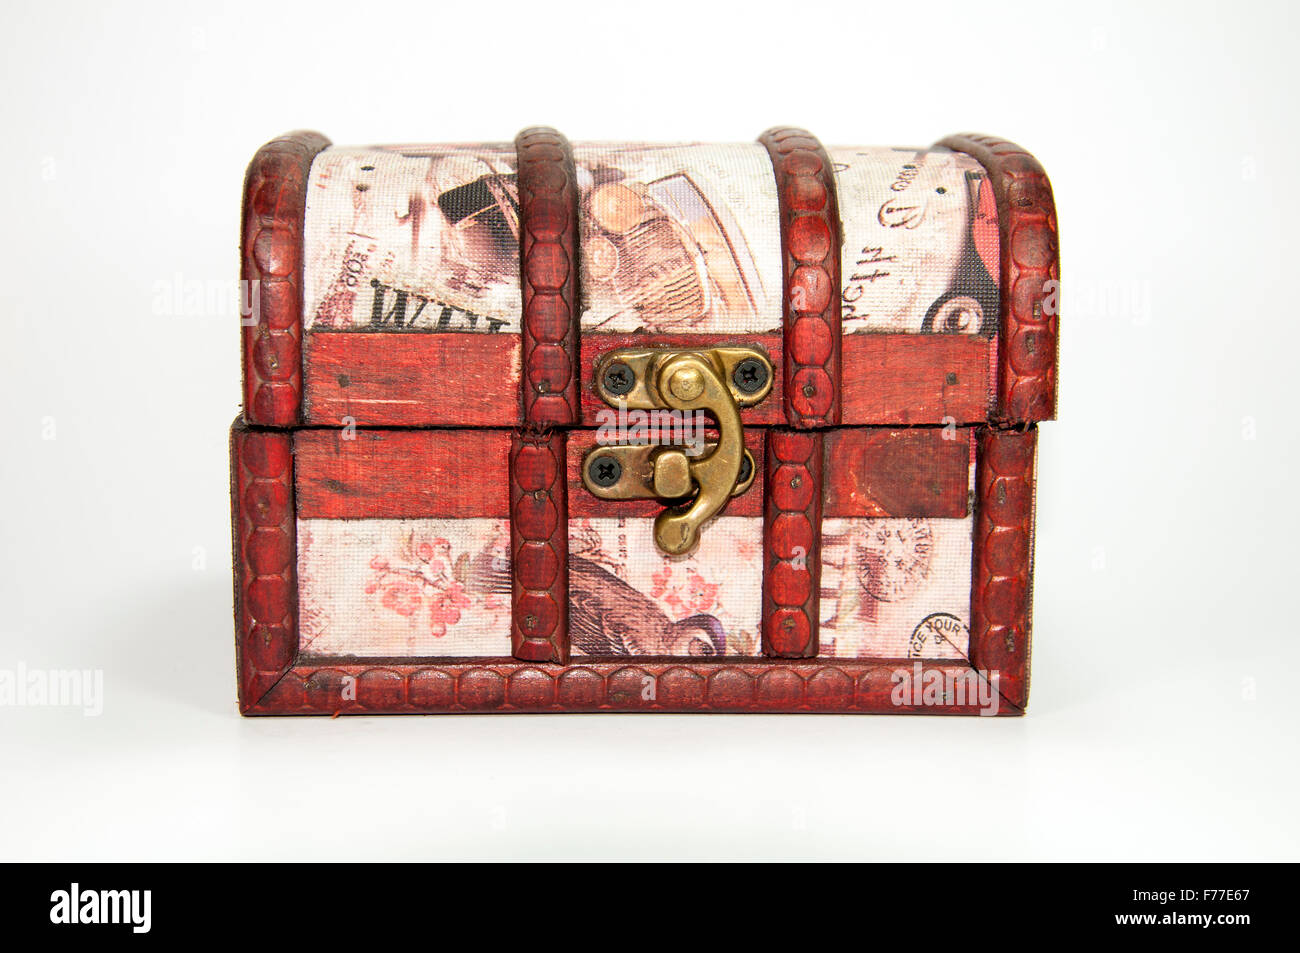 A wooden jewel box. Could be used as a treasure chest. Stock Photo